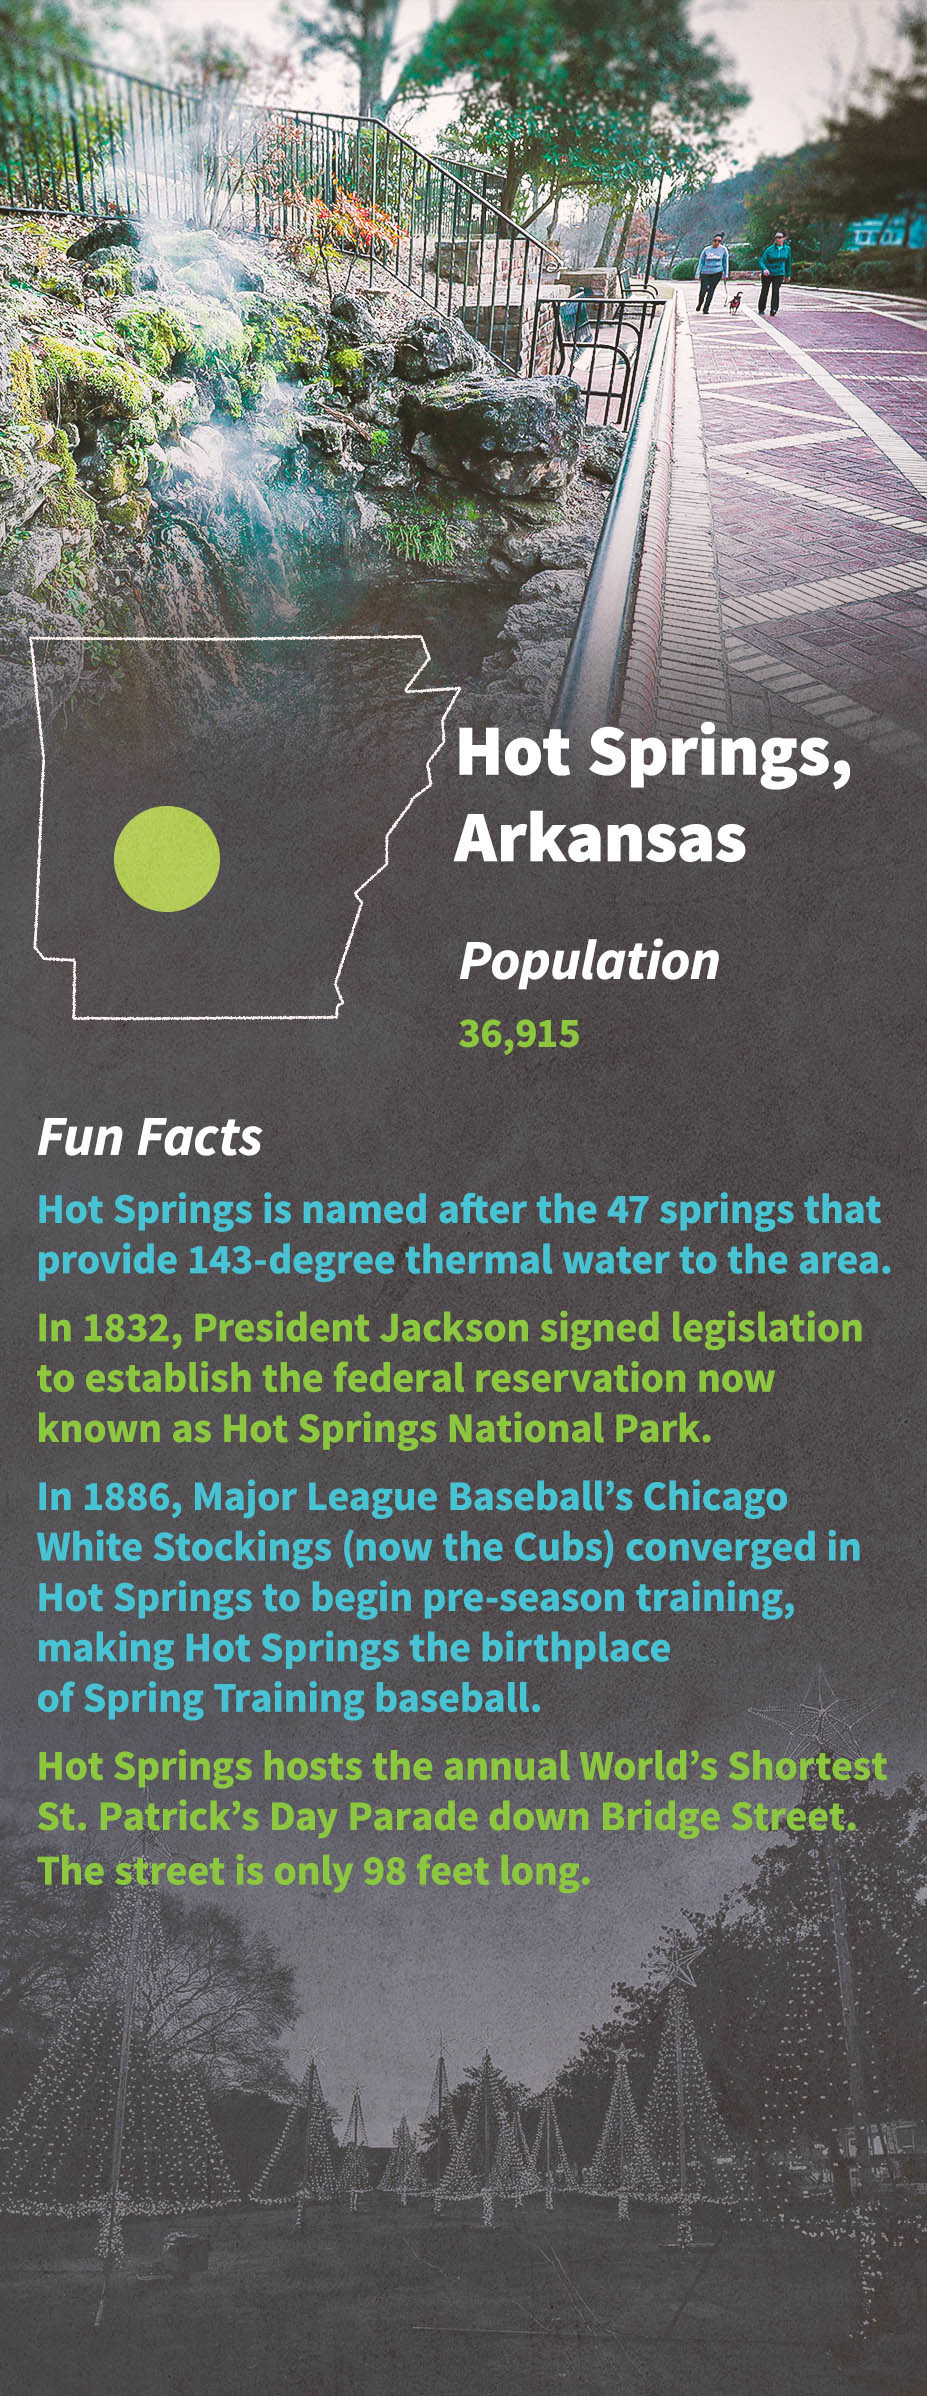 Hot Springs Fun Facts